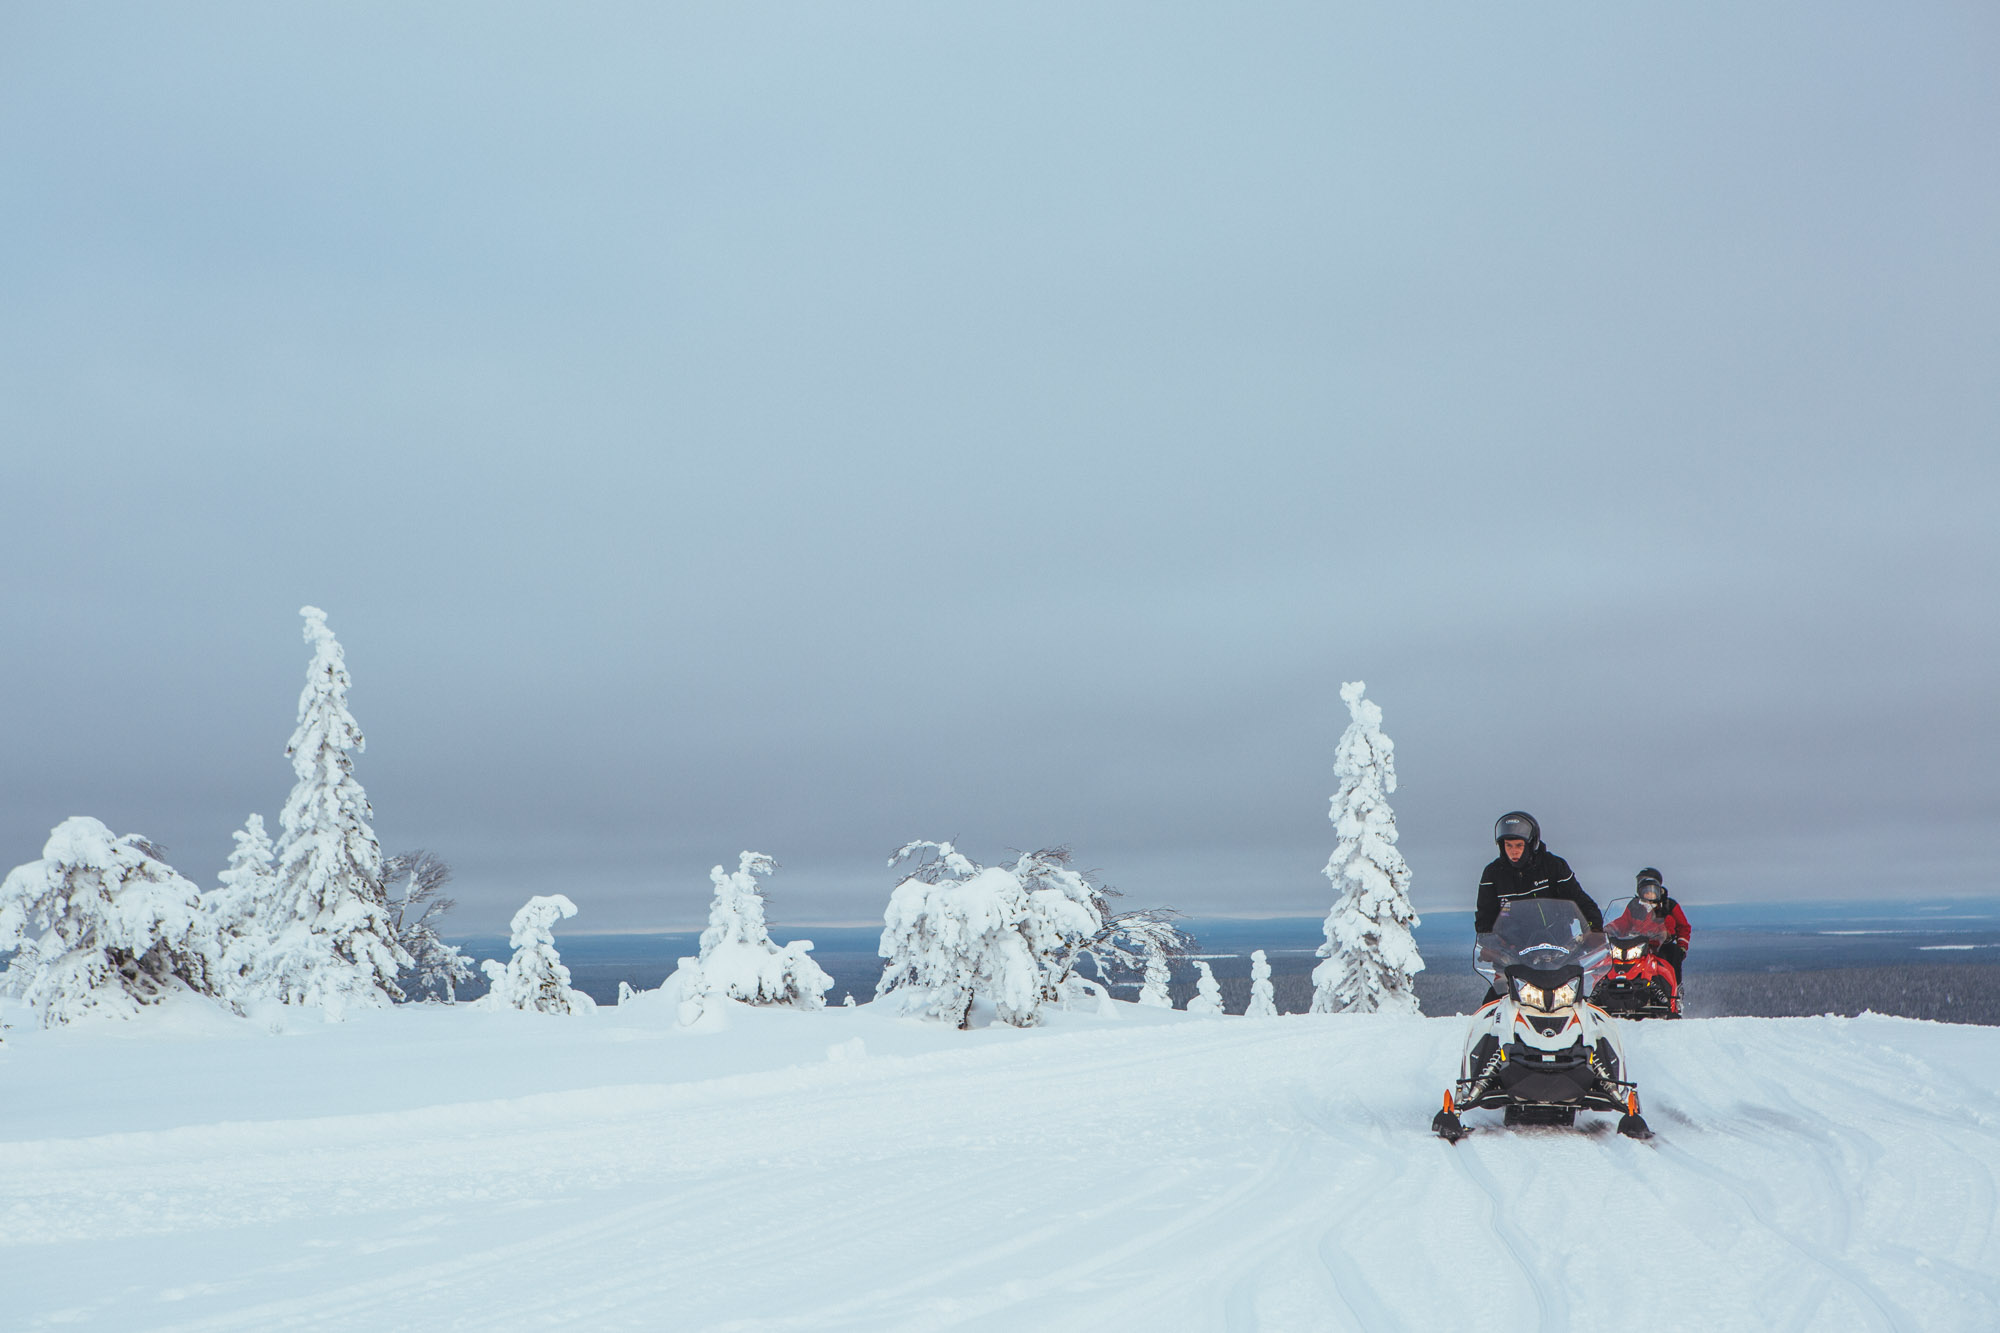 Amethyst Mine Snowmobiling tour - Jaakkola Reindeer Farm - 5-day Finland itinerary Northern Lights